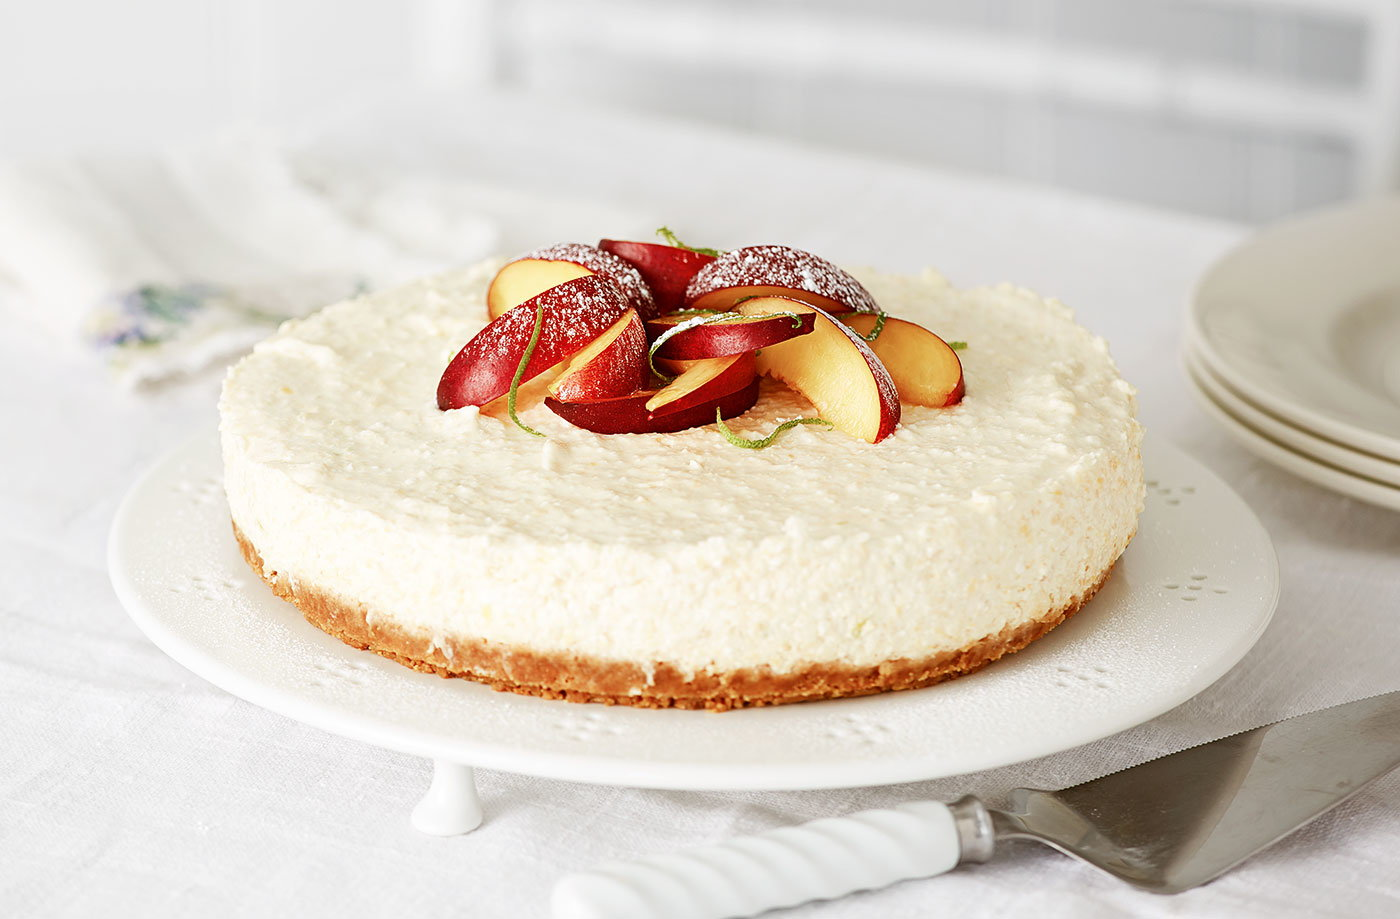 Nectarine and ginger biscuit cheesecake recipe